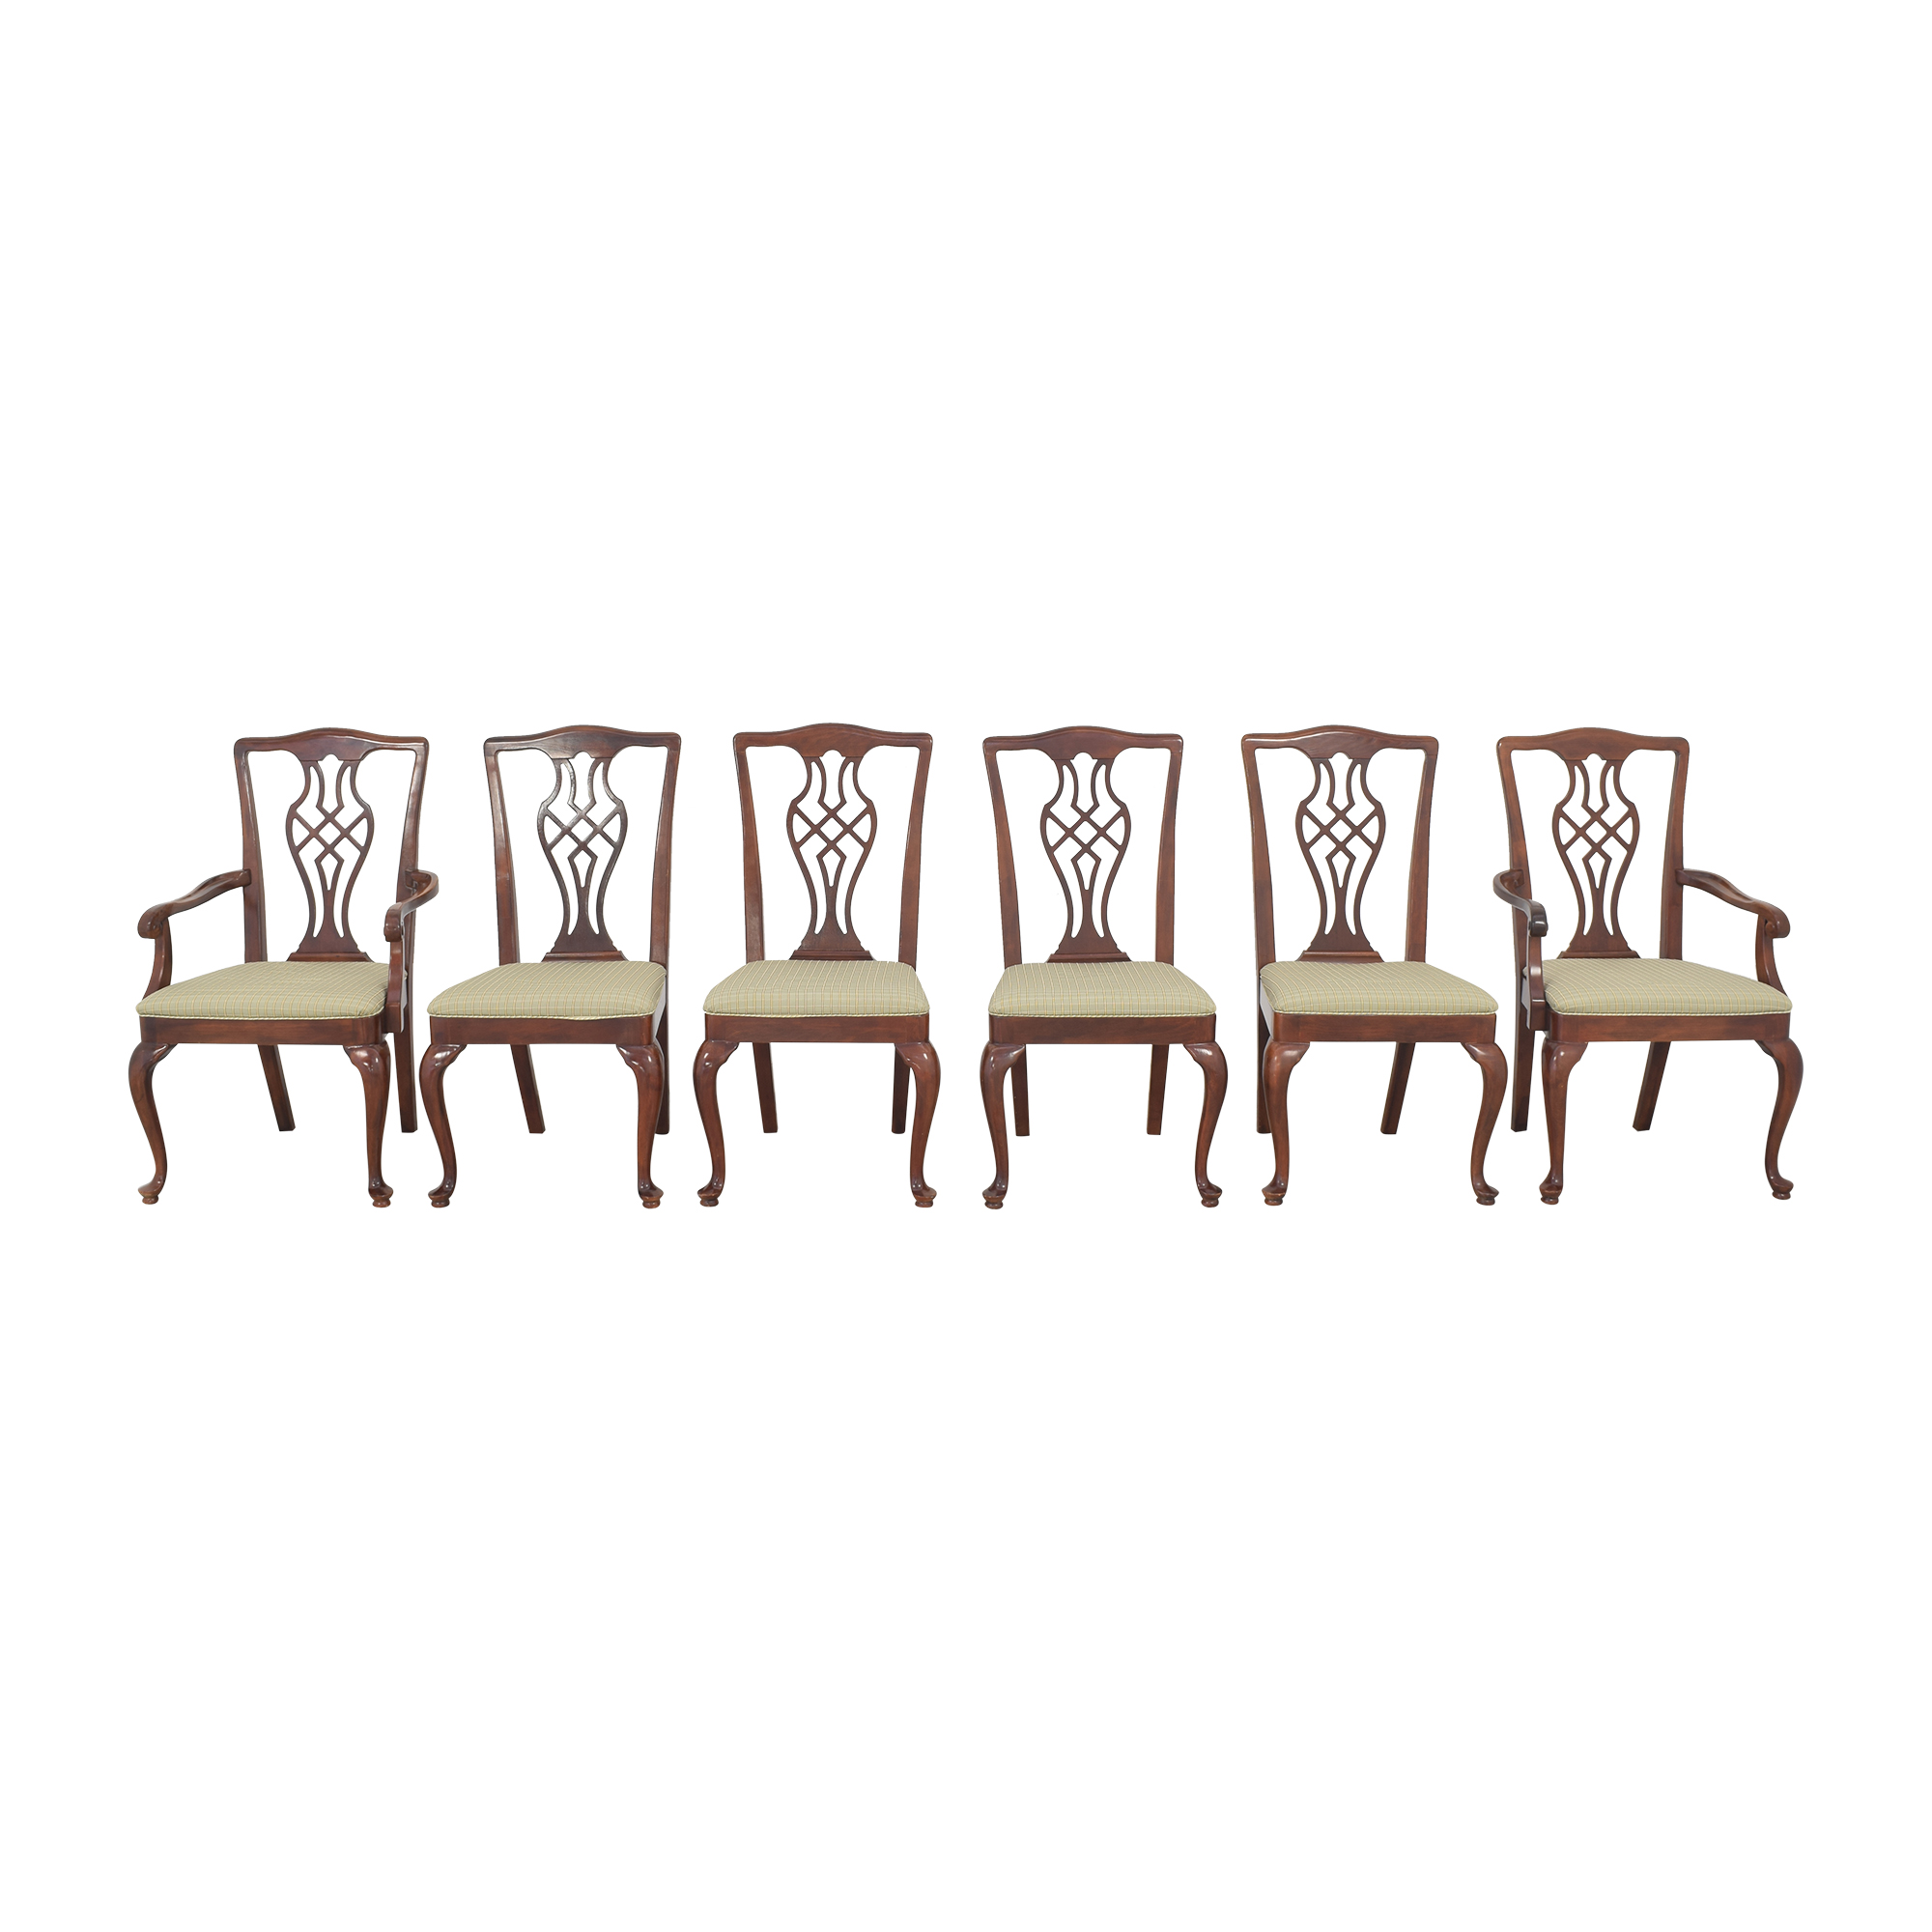 buy Drexel Heritage Drexel Upholstered Dining Chairs online